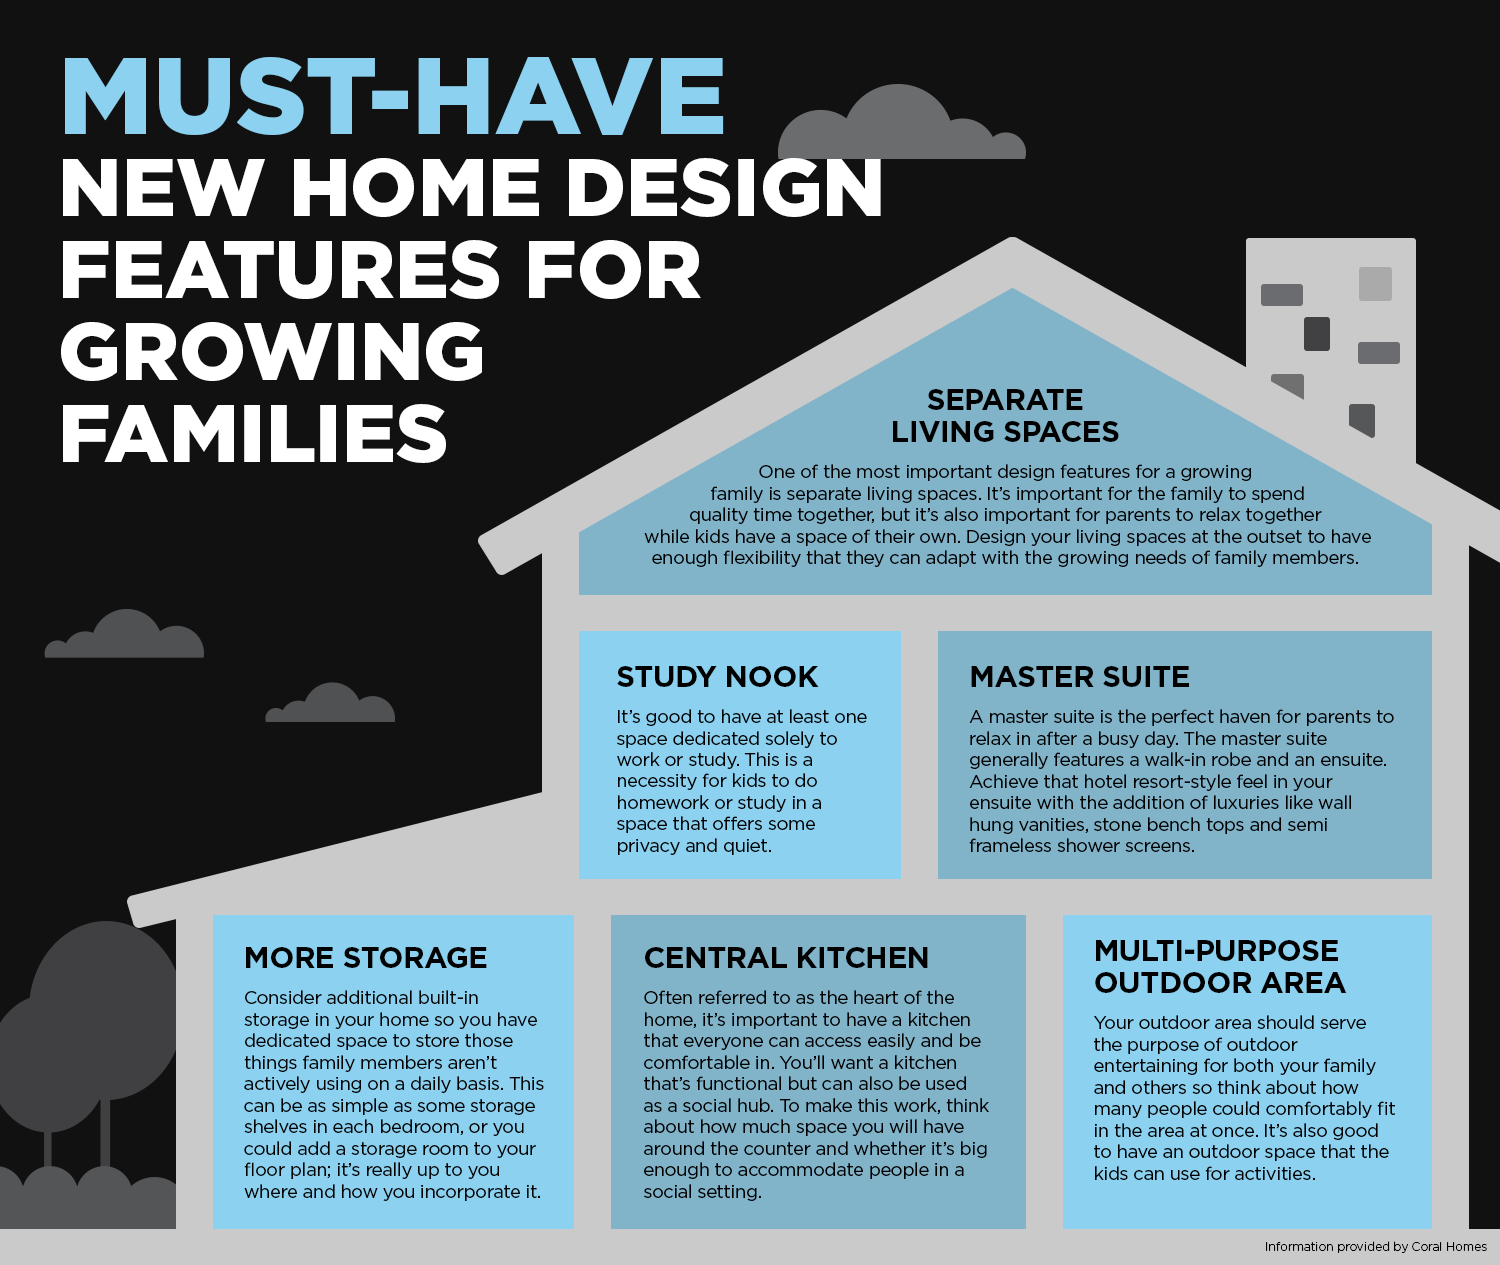 Must-have New Home Design Features for Growing Families | Visual.ly